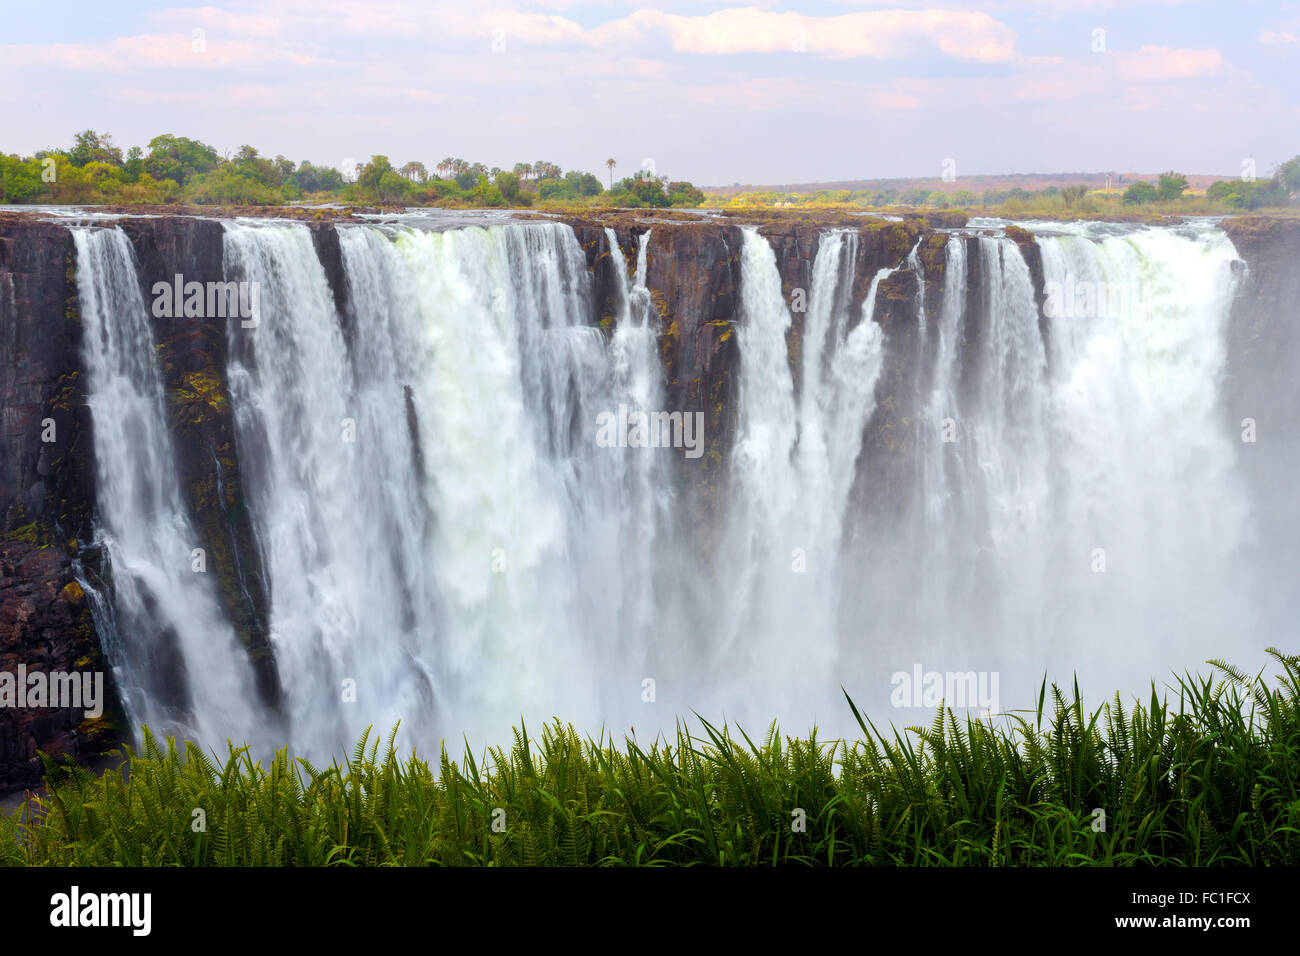 The Victoria falls is the largest curtain of water in the world (1708 meters wide). The falls and the surrounding - Stock Image